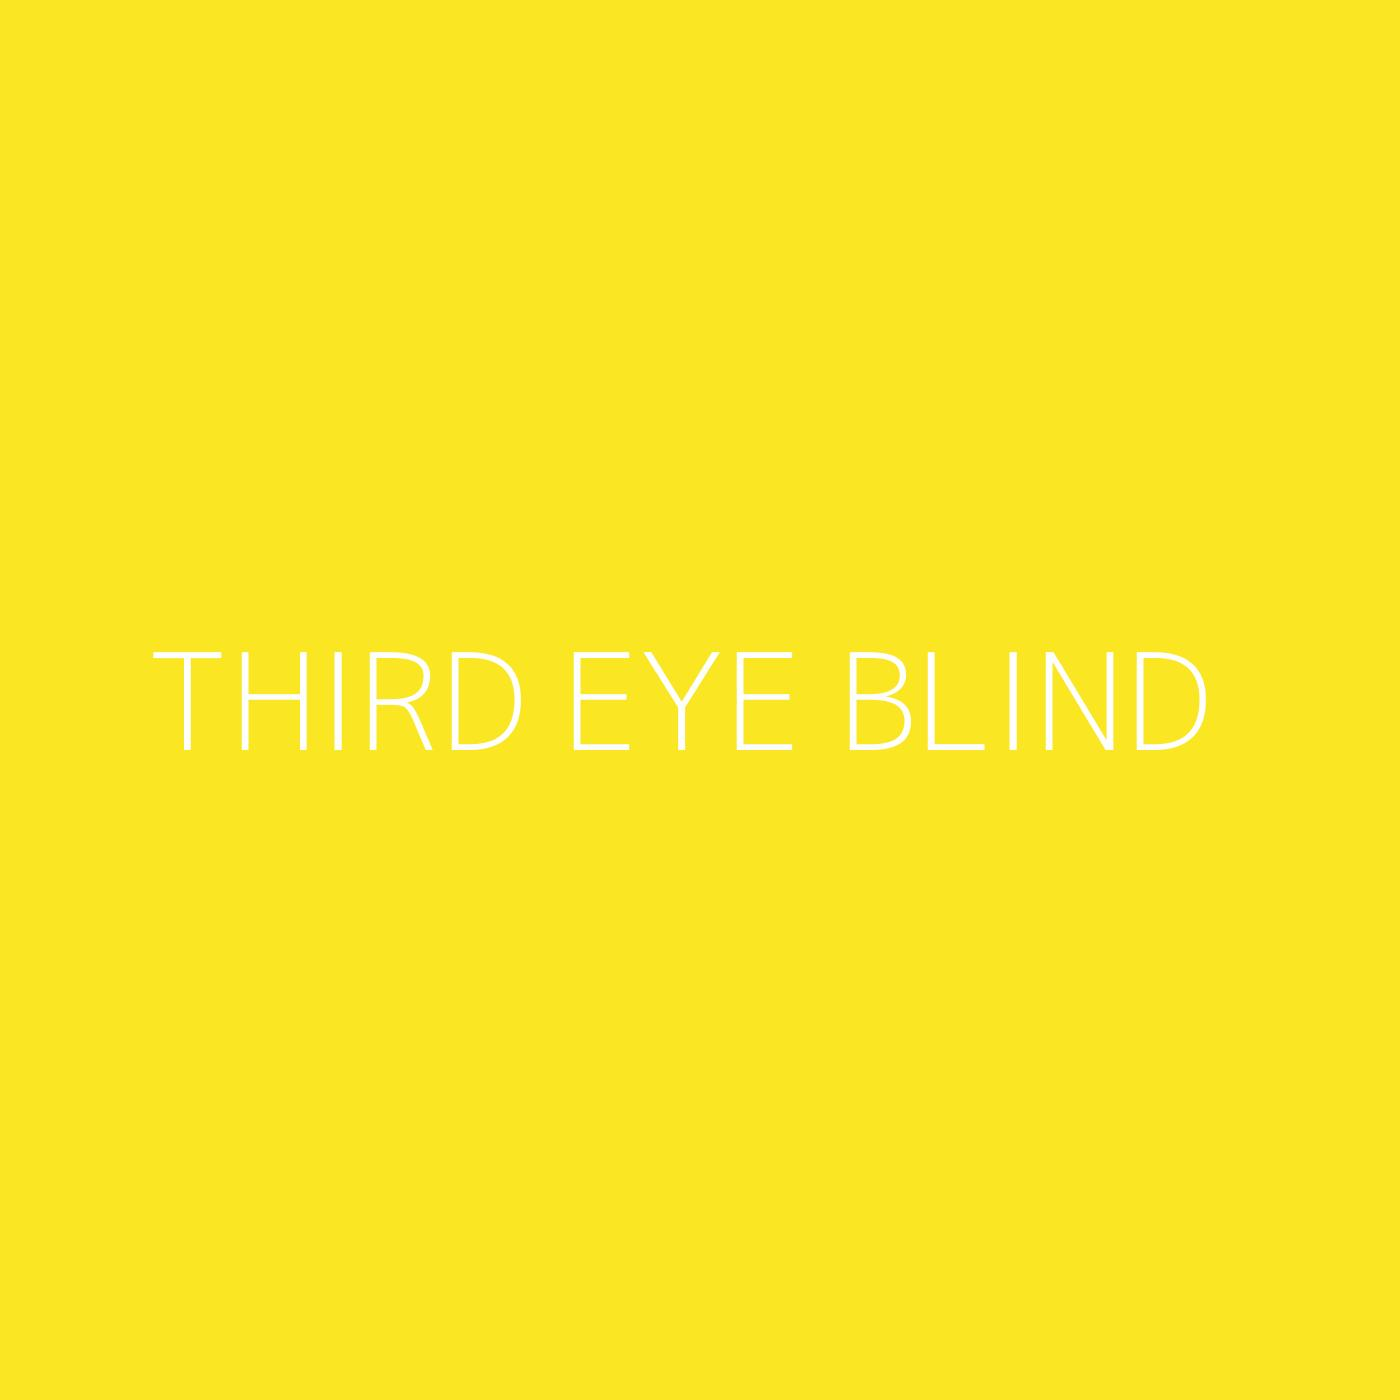 Third Eye Blind Playlist Artwork